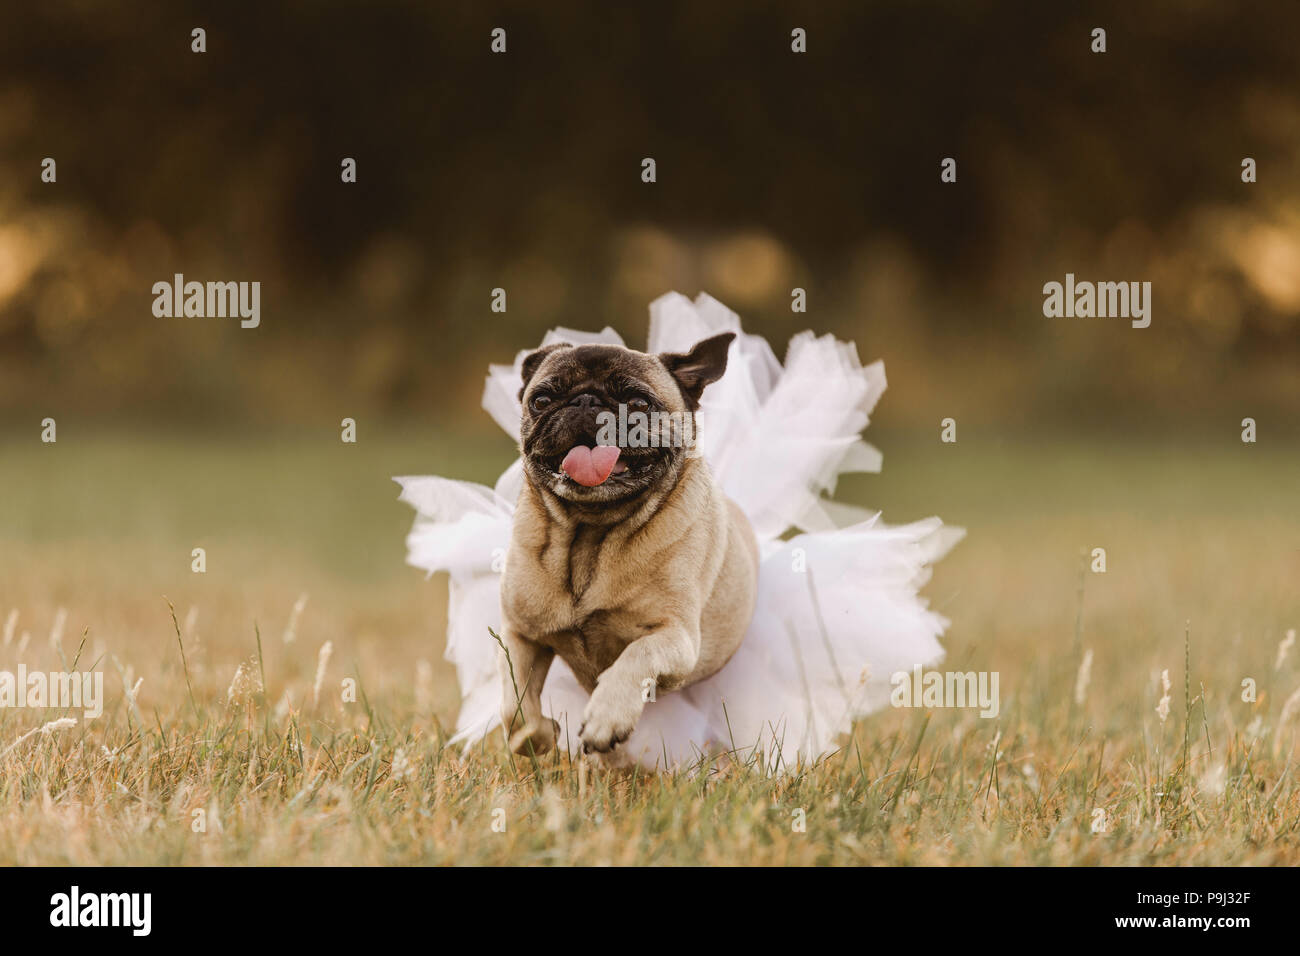 Happy pug running and wearing a tutu for a wedding or birthday as a pug princess or for a celebration - Stock Image